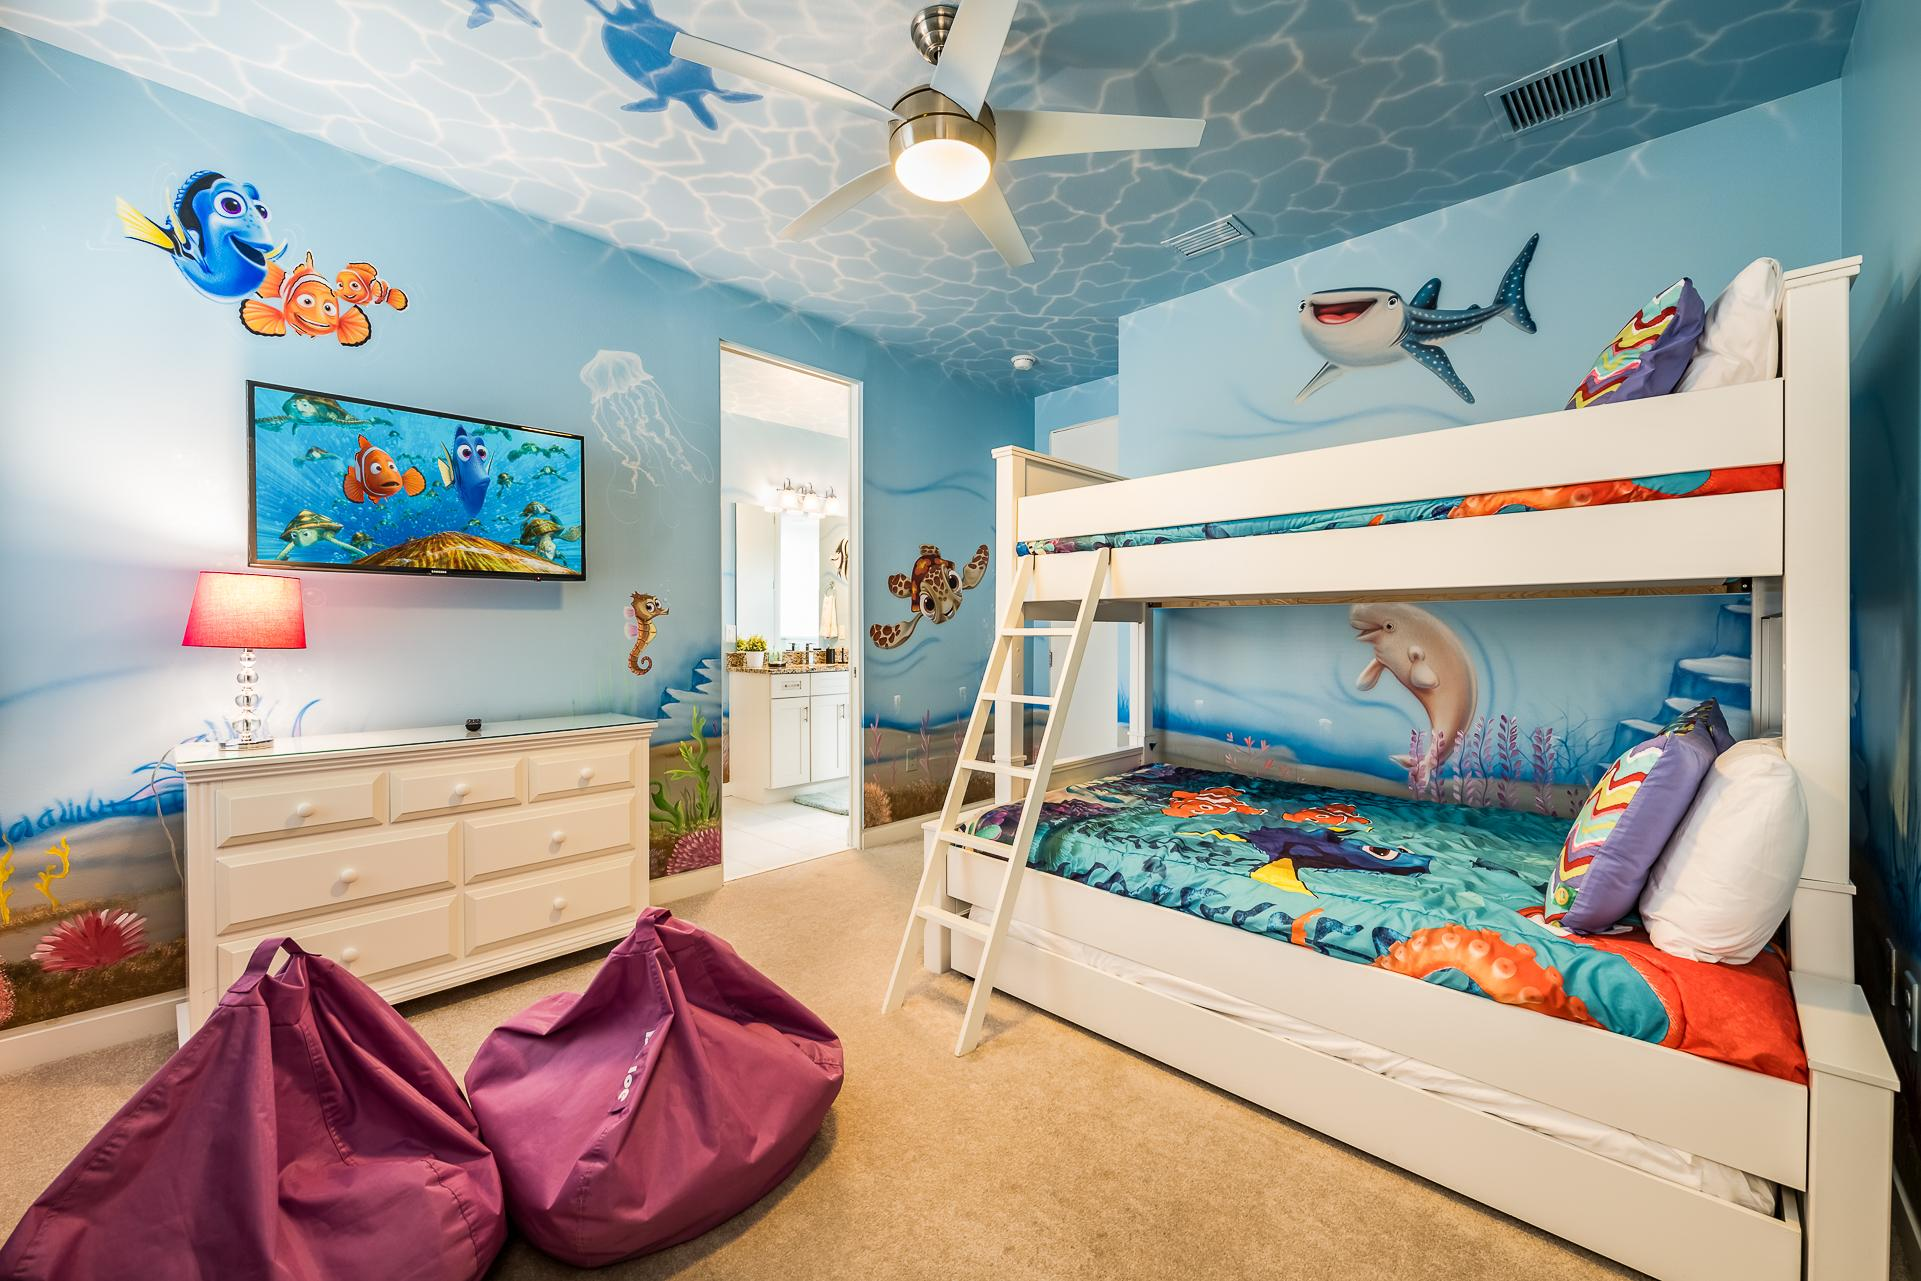 Modern Villa with Fun Themed Bedroom at Reunion